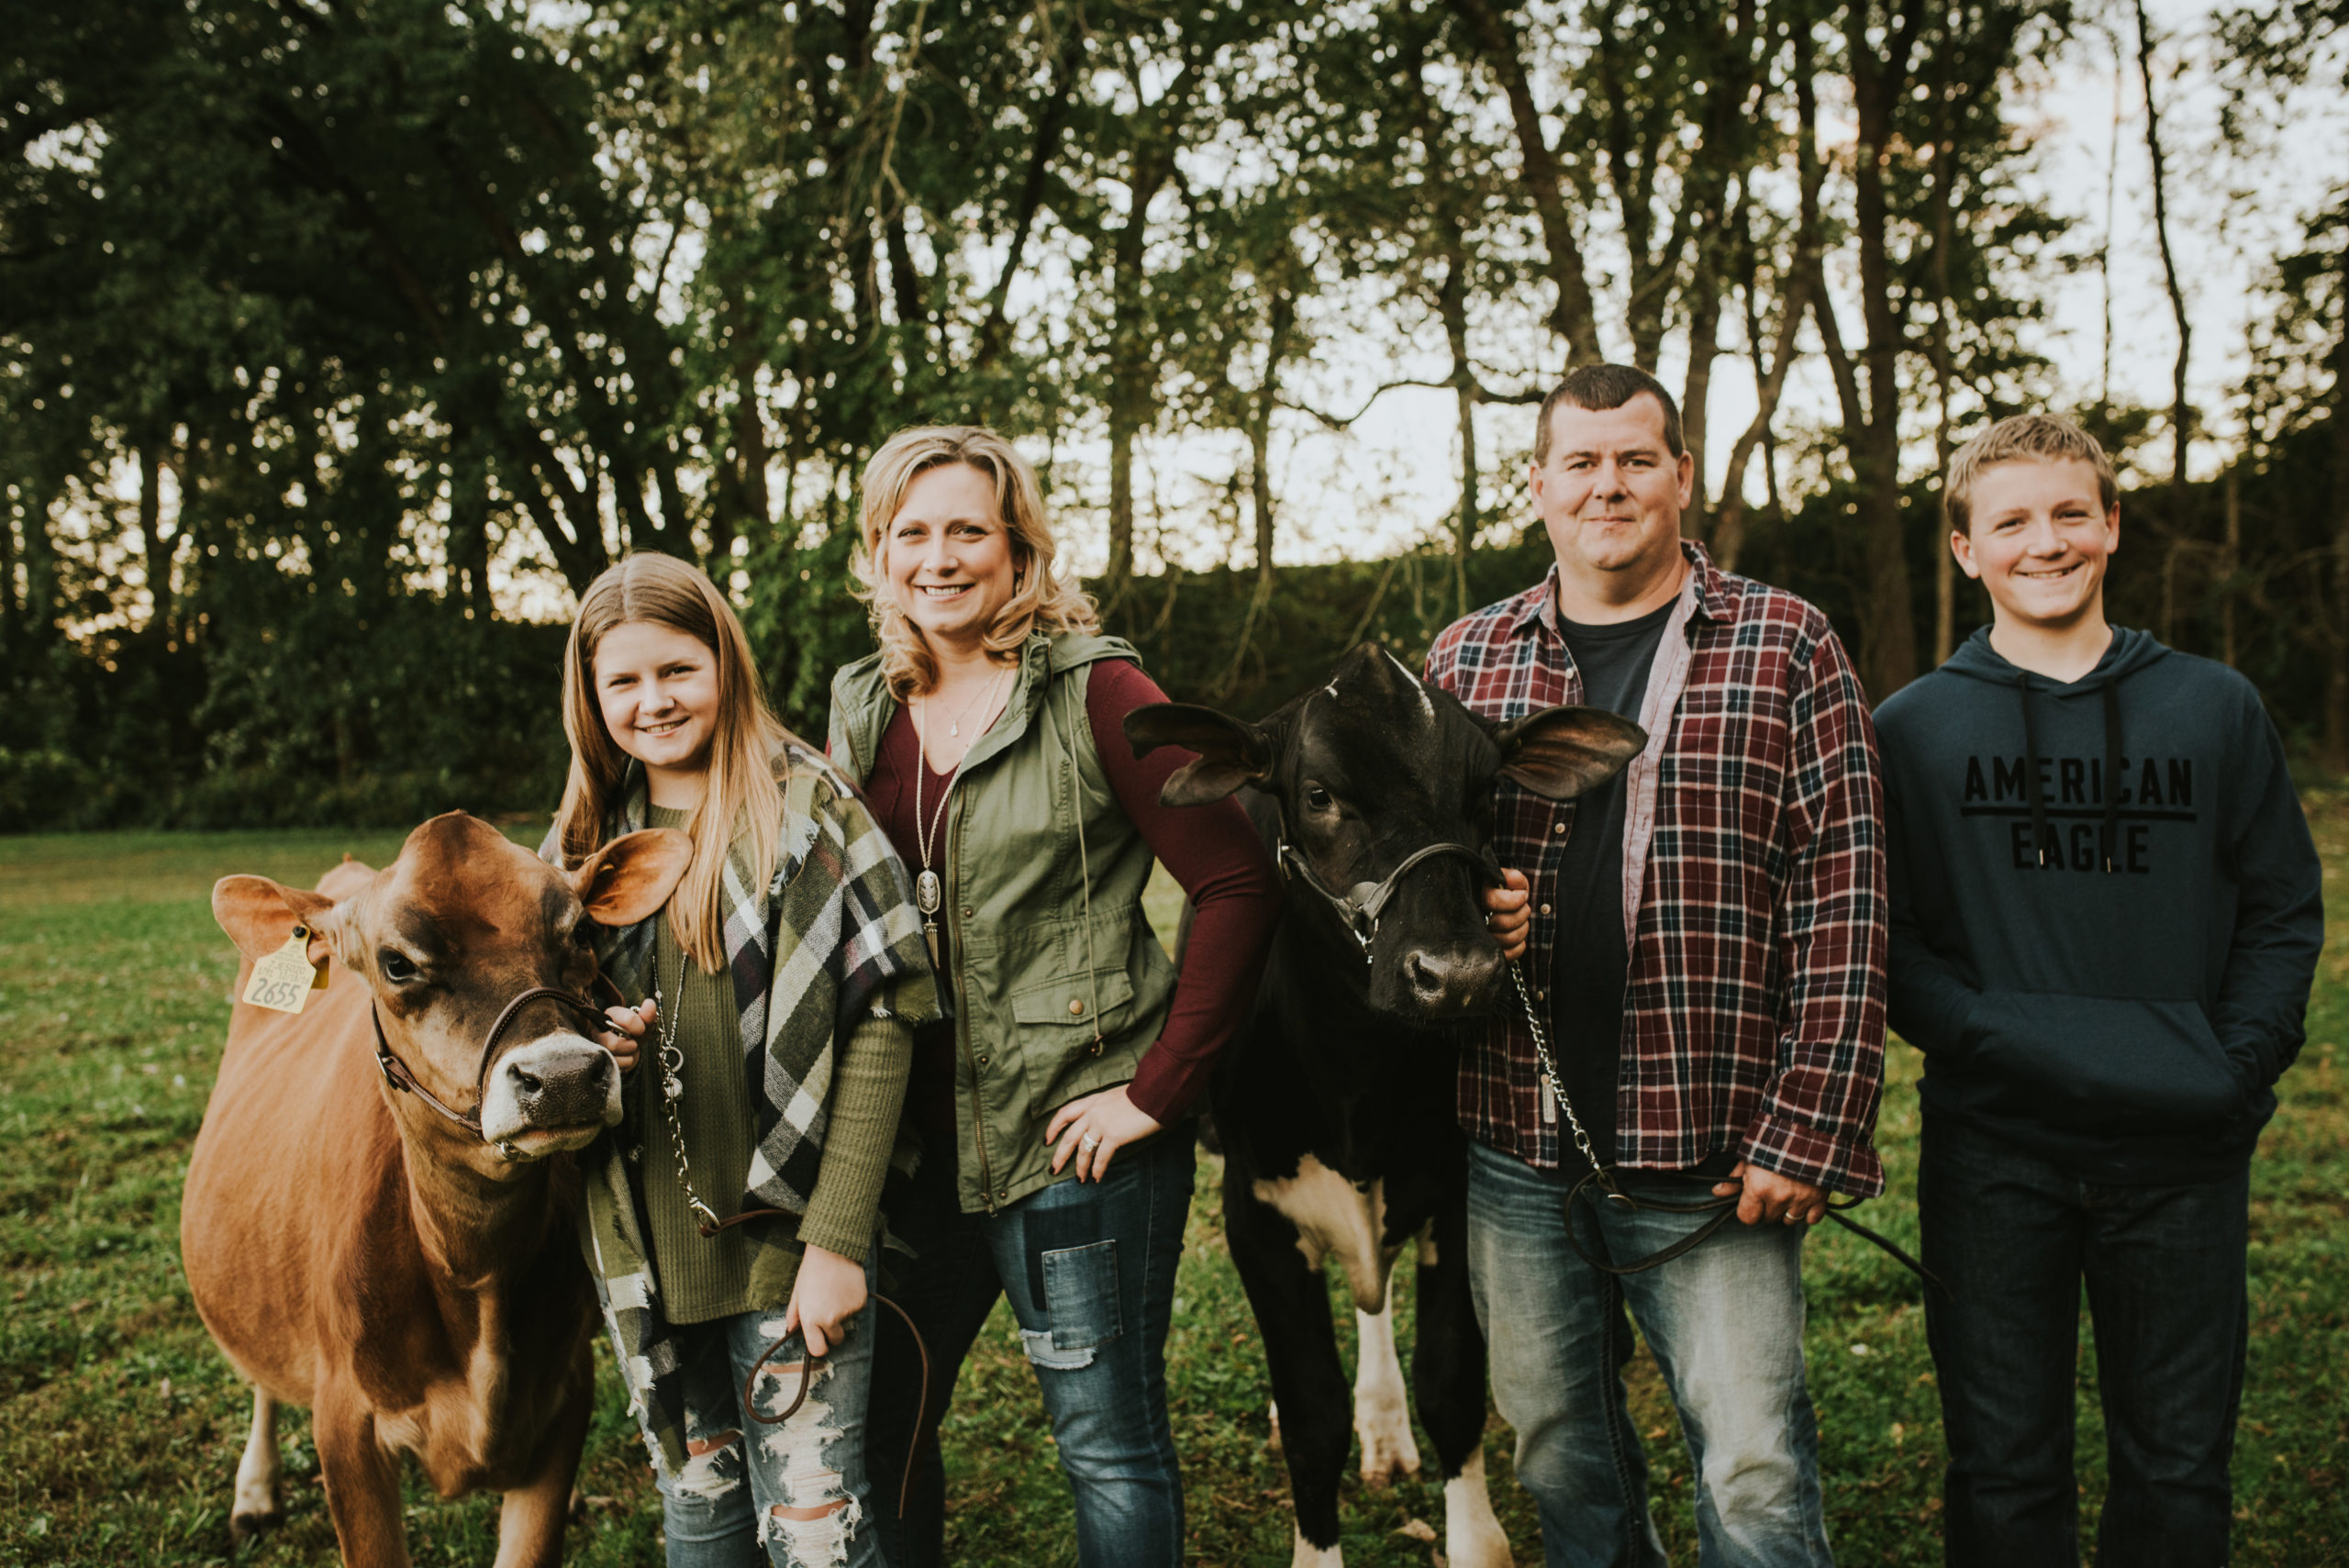 Beyer Family photo with Jersey and holstein calves